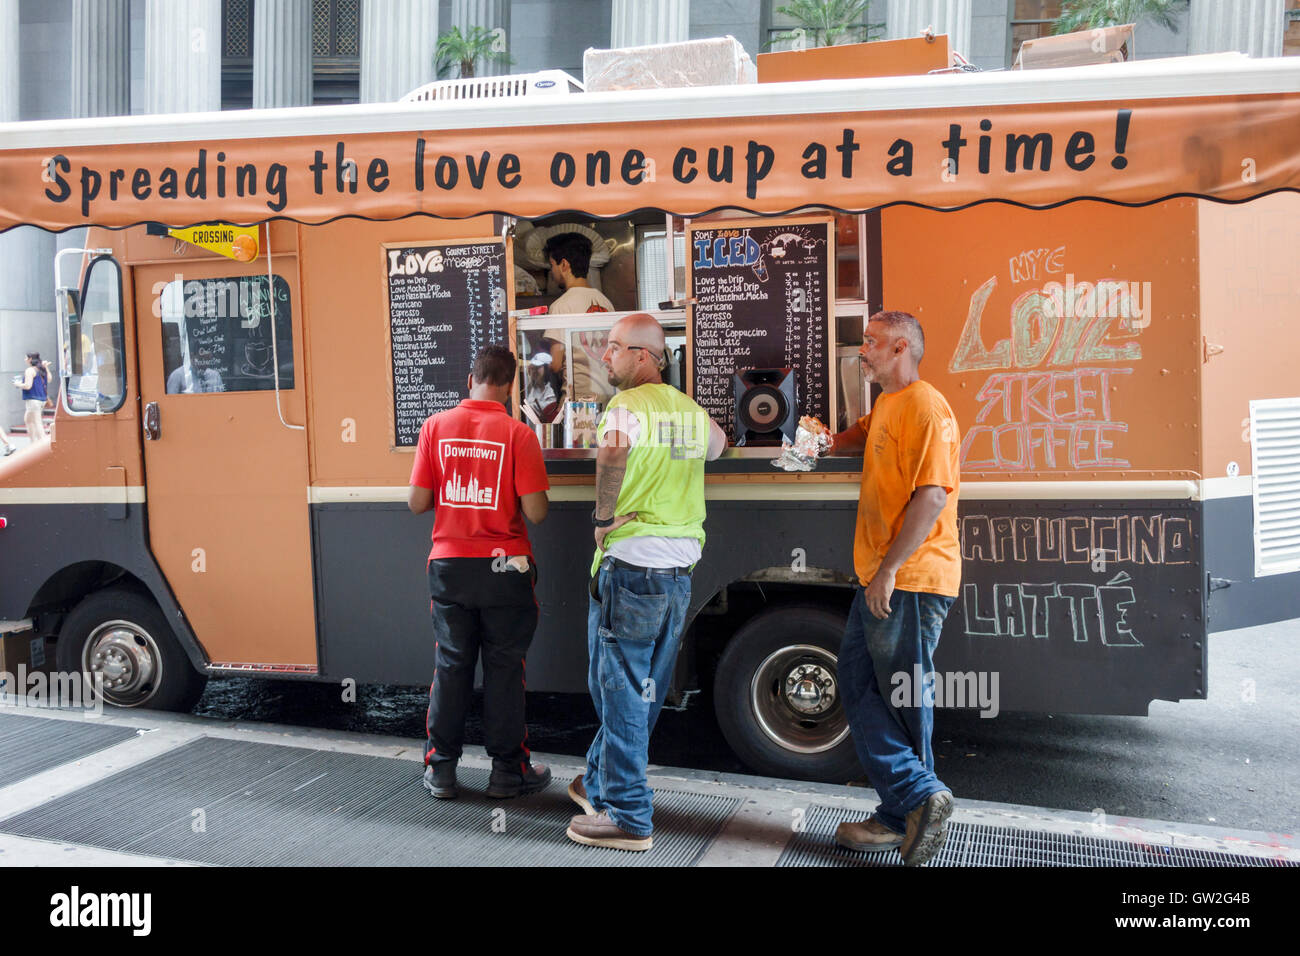 Lower Manhattan New York City NYC NY Love Street Coffee Food Truck Mobile Business Cappuccino Latte Black Man Worker Customer